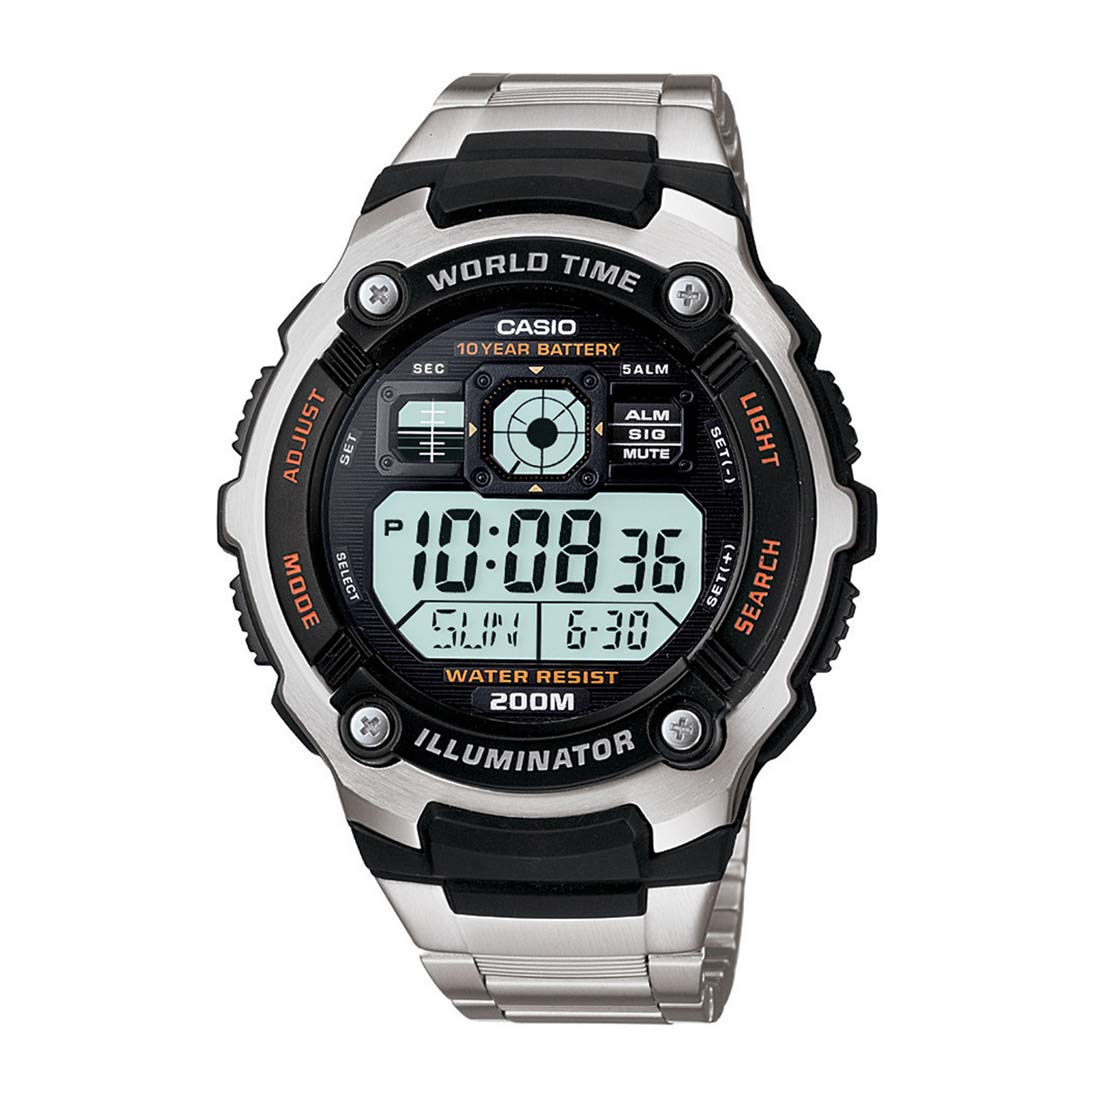 Amazon.com: Casio General Mens Watches Sporty Digital AE-2000WD-1AVDF - WW: Watches